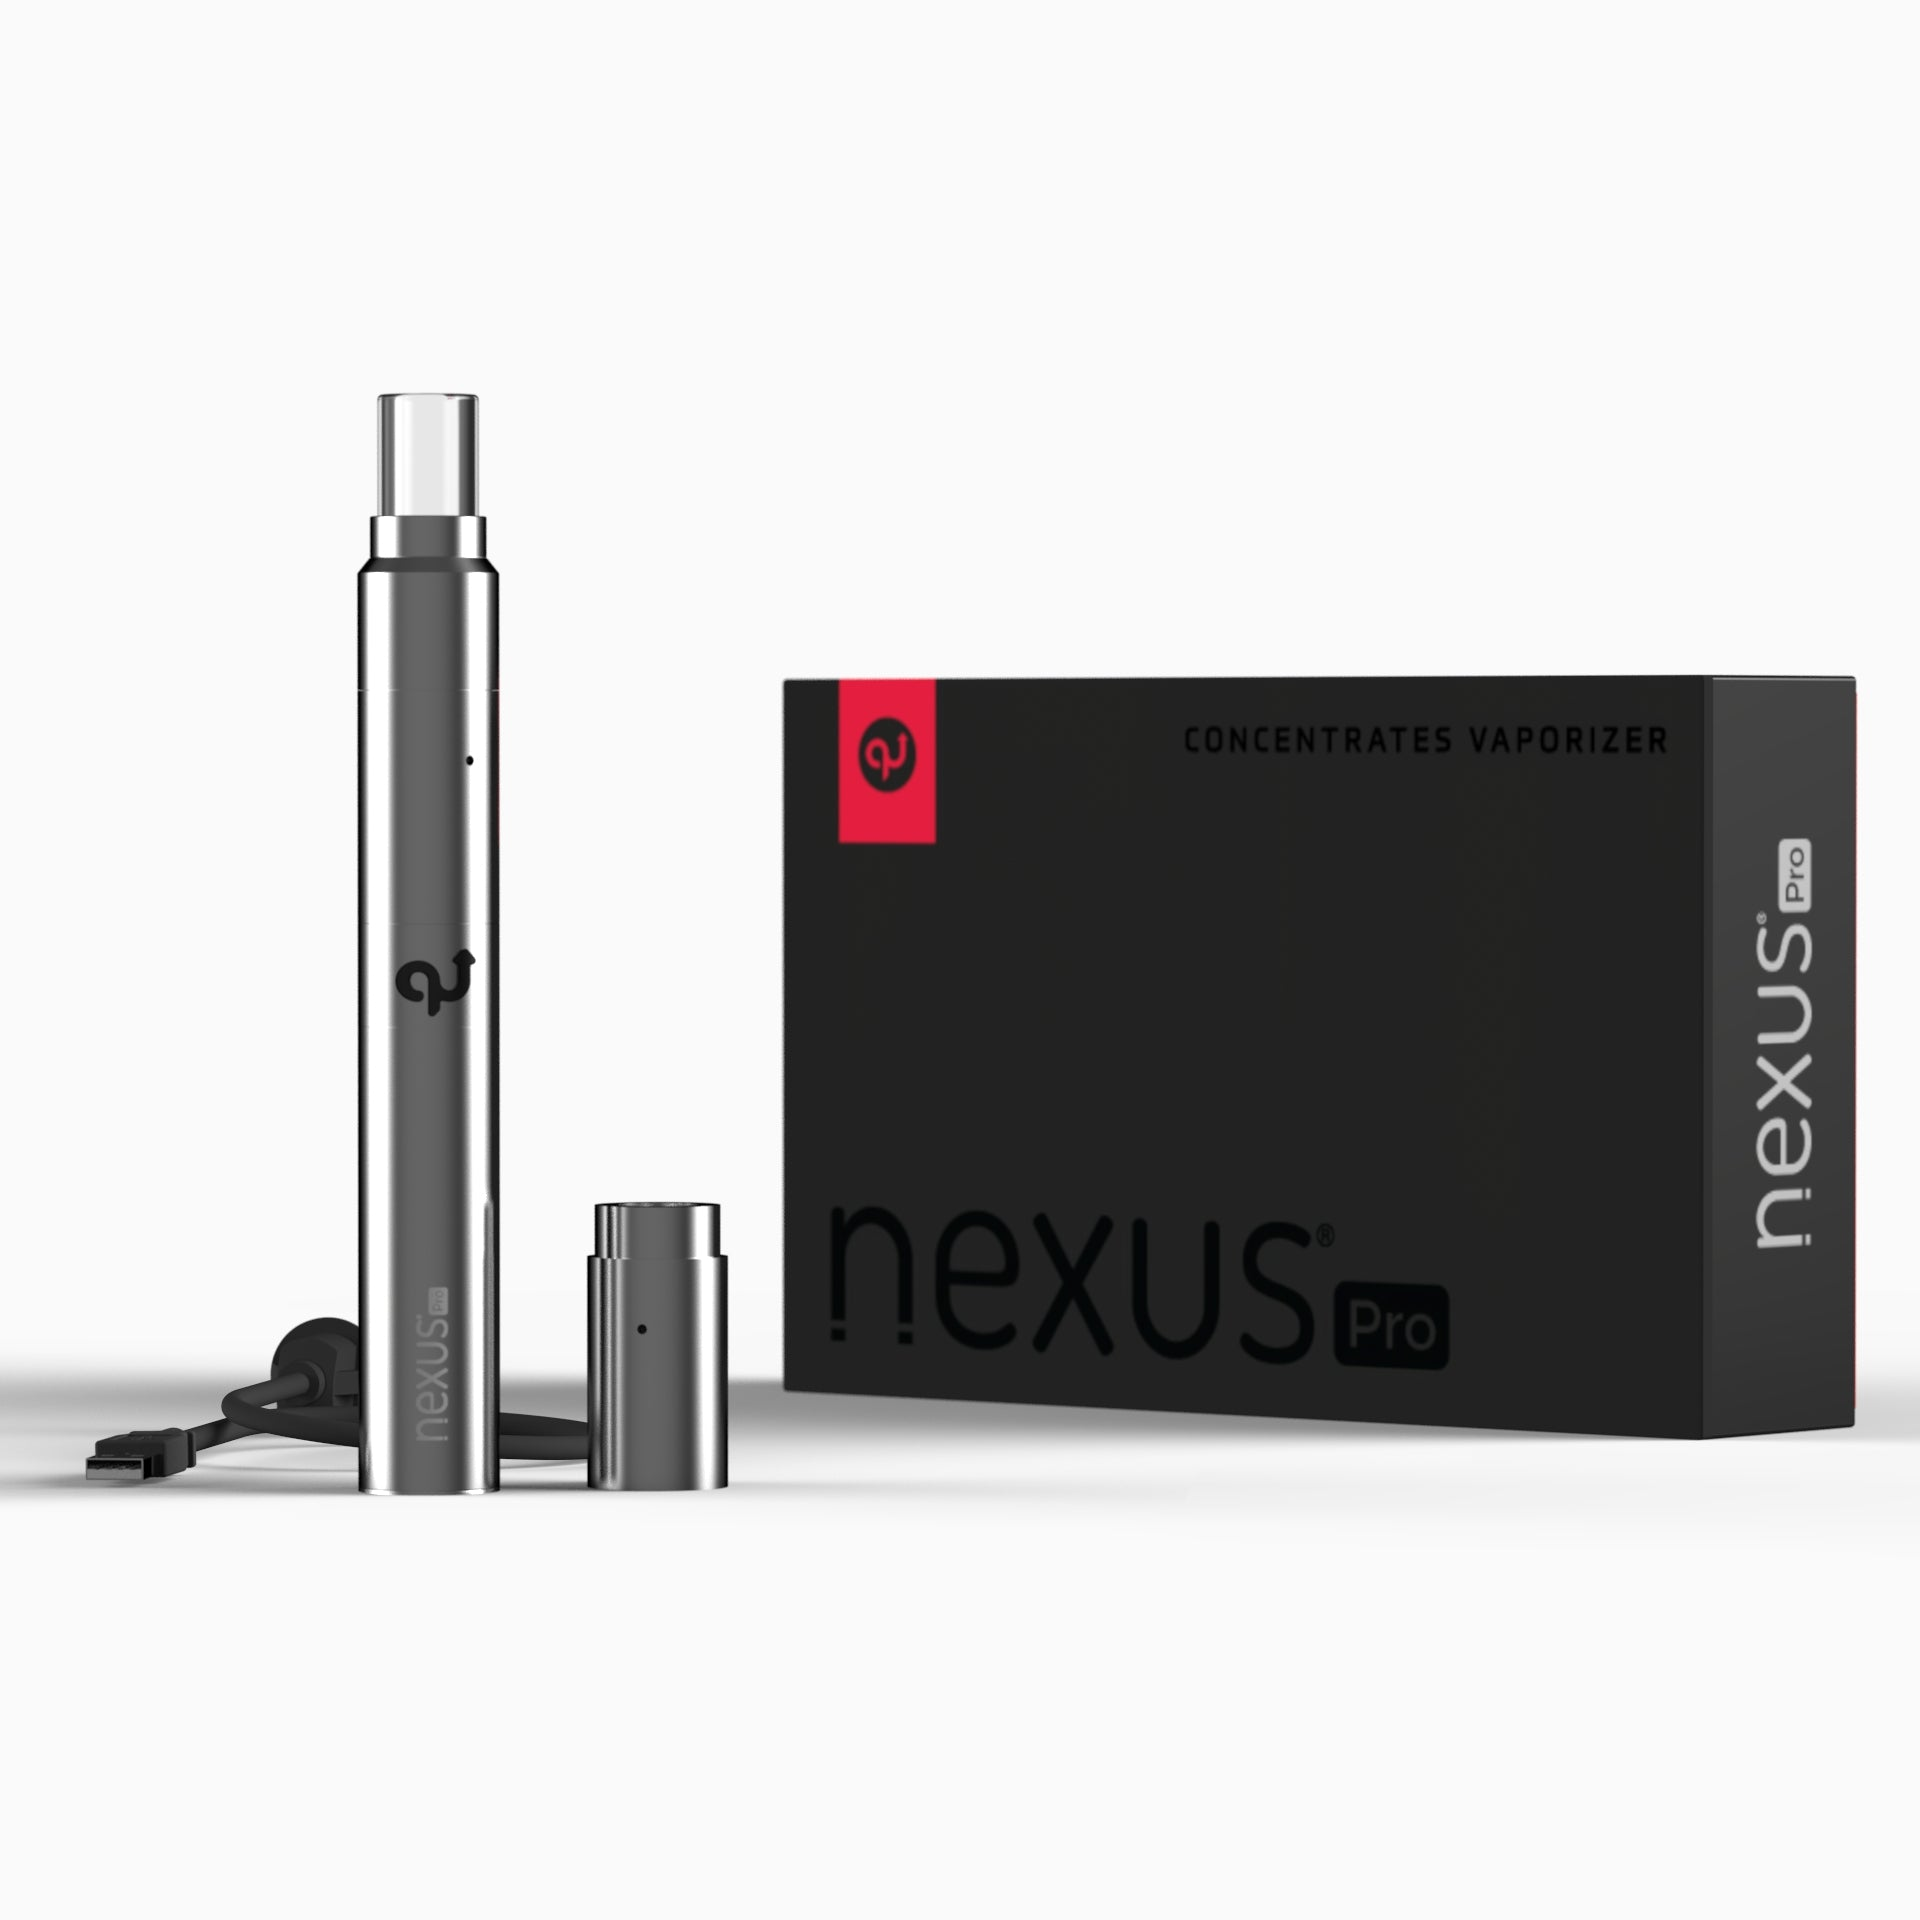 Nexus Pro wax vaporizer | Voted best wax pen 2019, best vape pen 2019 | Qloud Up